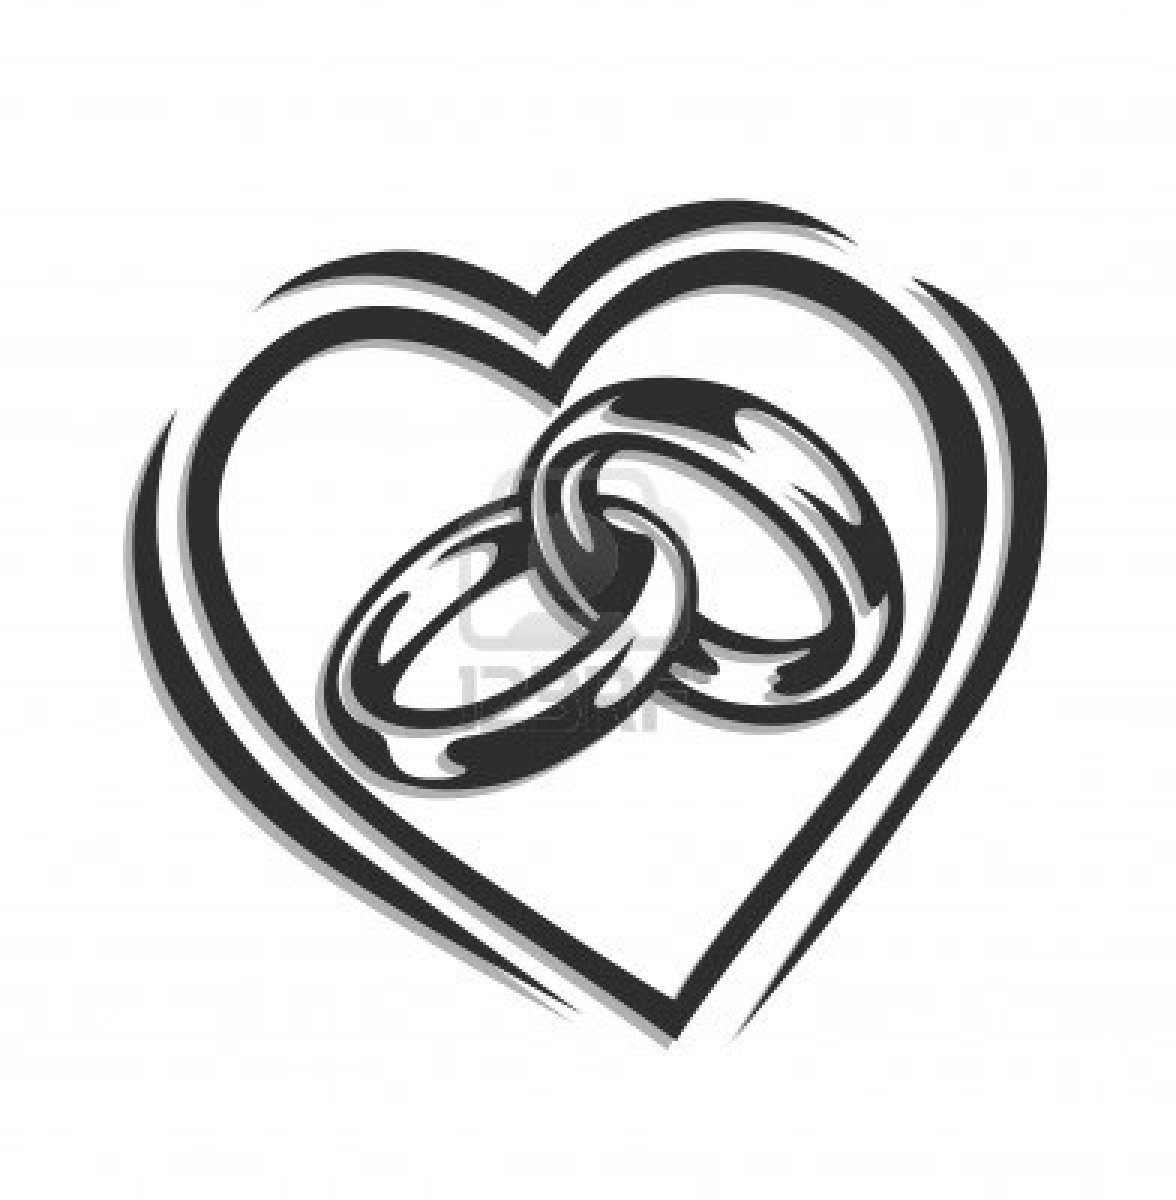 interlocking wedding rings clipart - photo #1